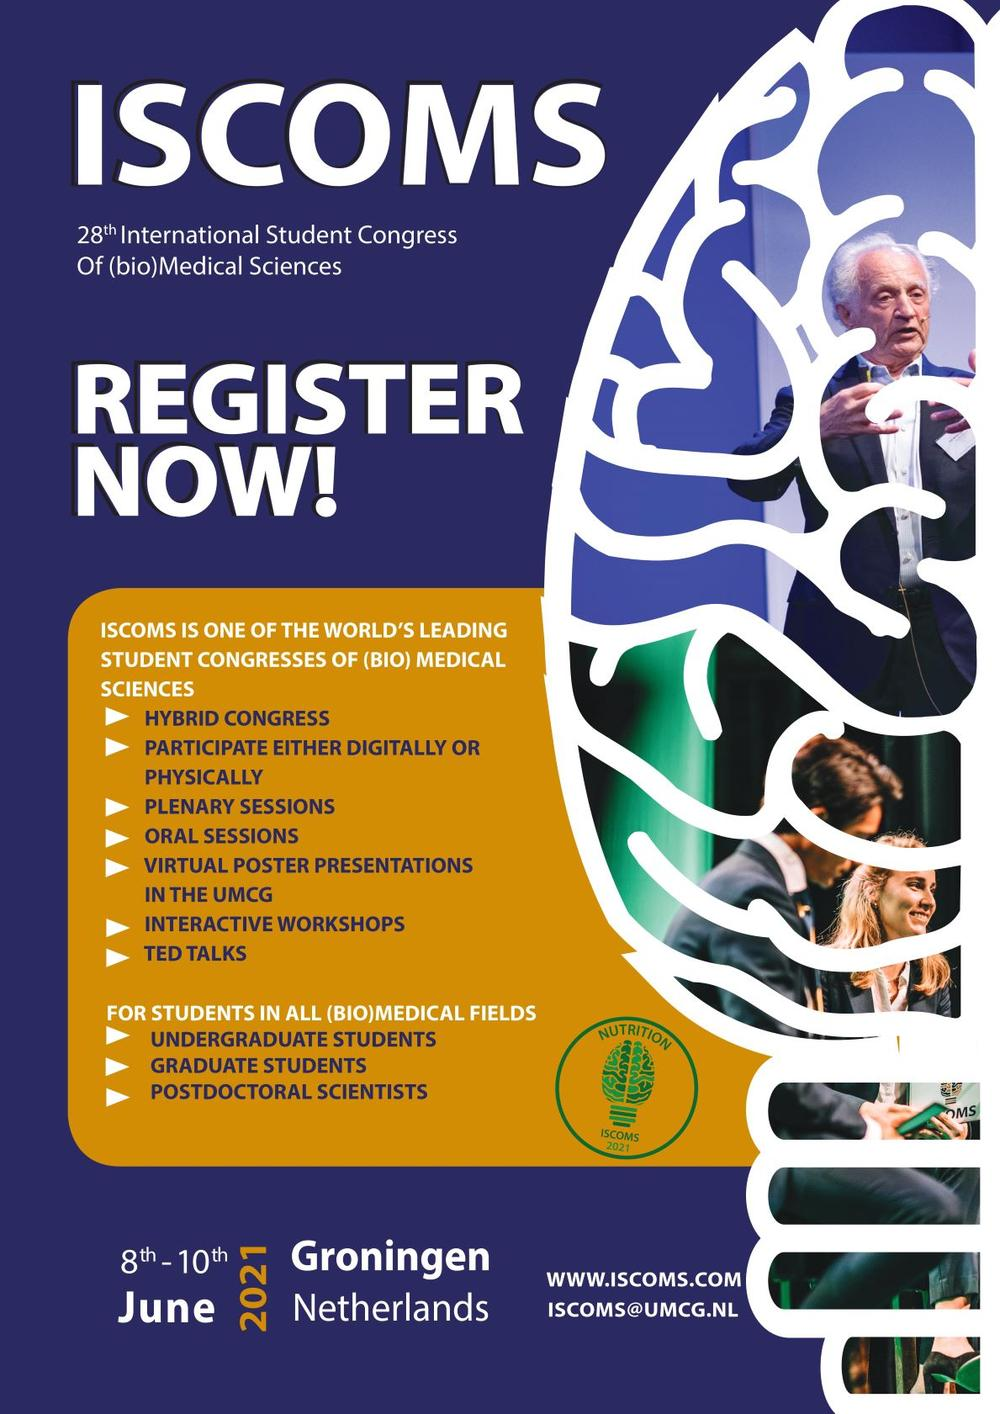 International Student Congress Of (bio)Medical Sciences (ISCOMS)